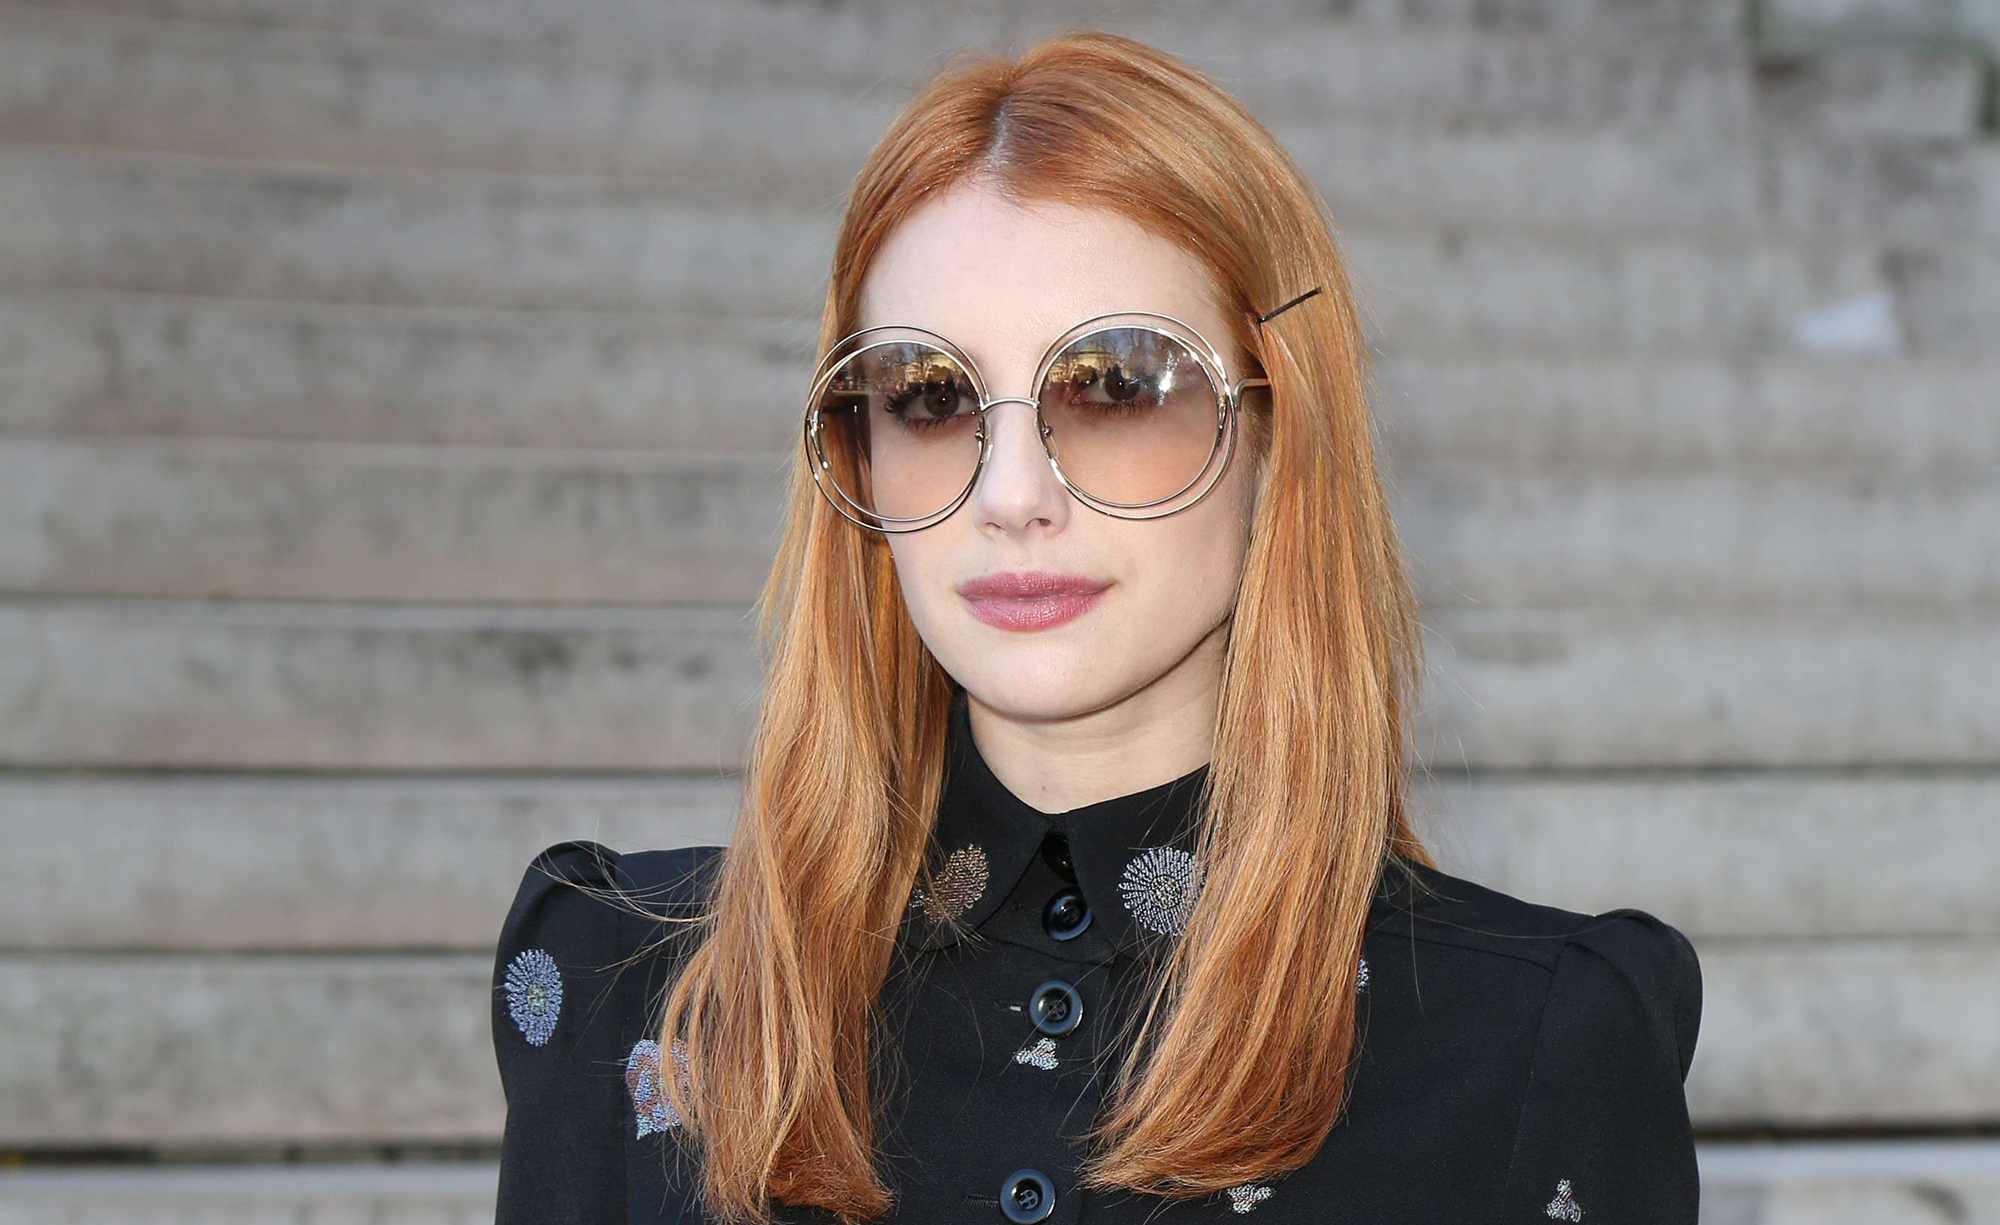 Blorange Hair What Does It Mean And What Does It Look Like